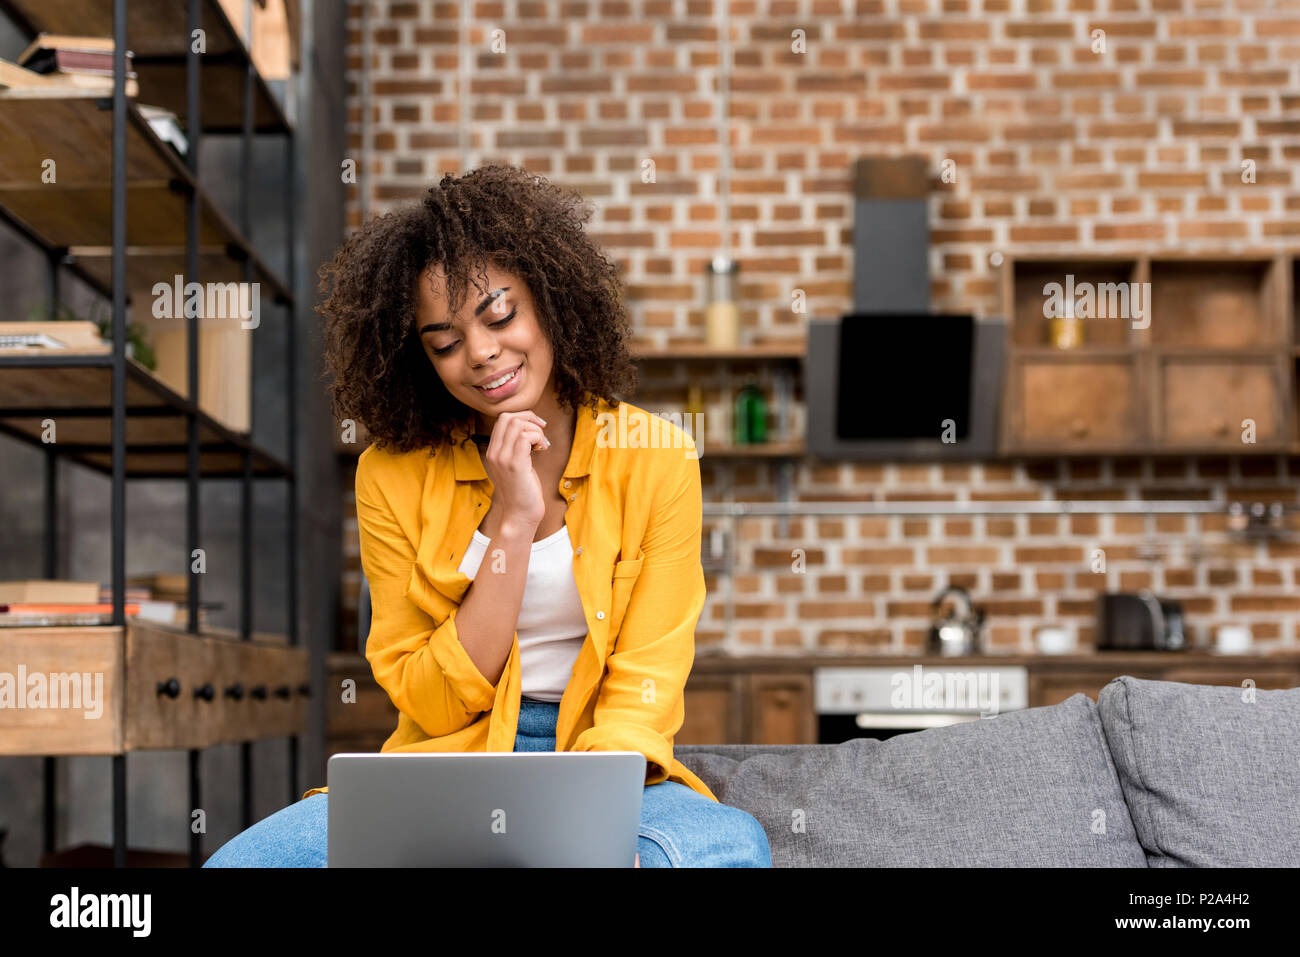 smiling mixed race woman working with laptop at home with blurred loft kitchen on background - Stock Image